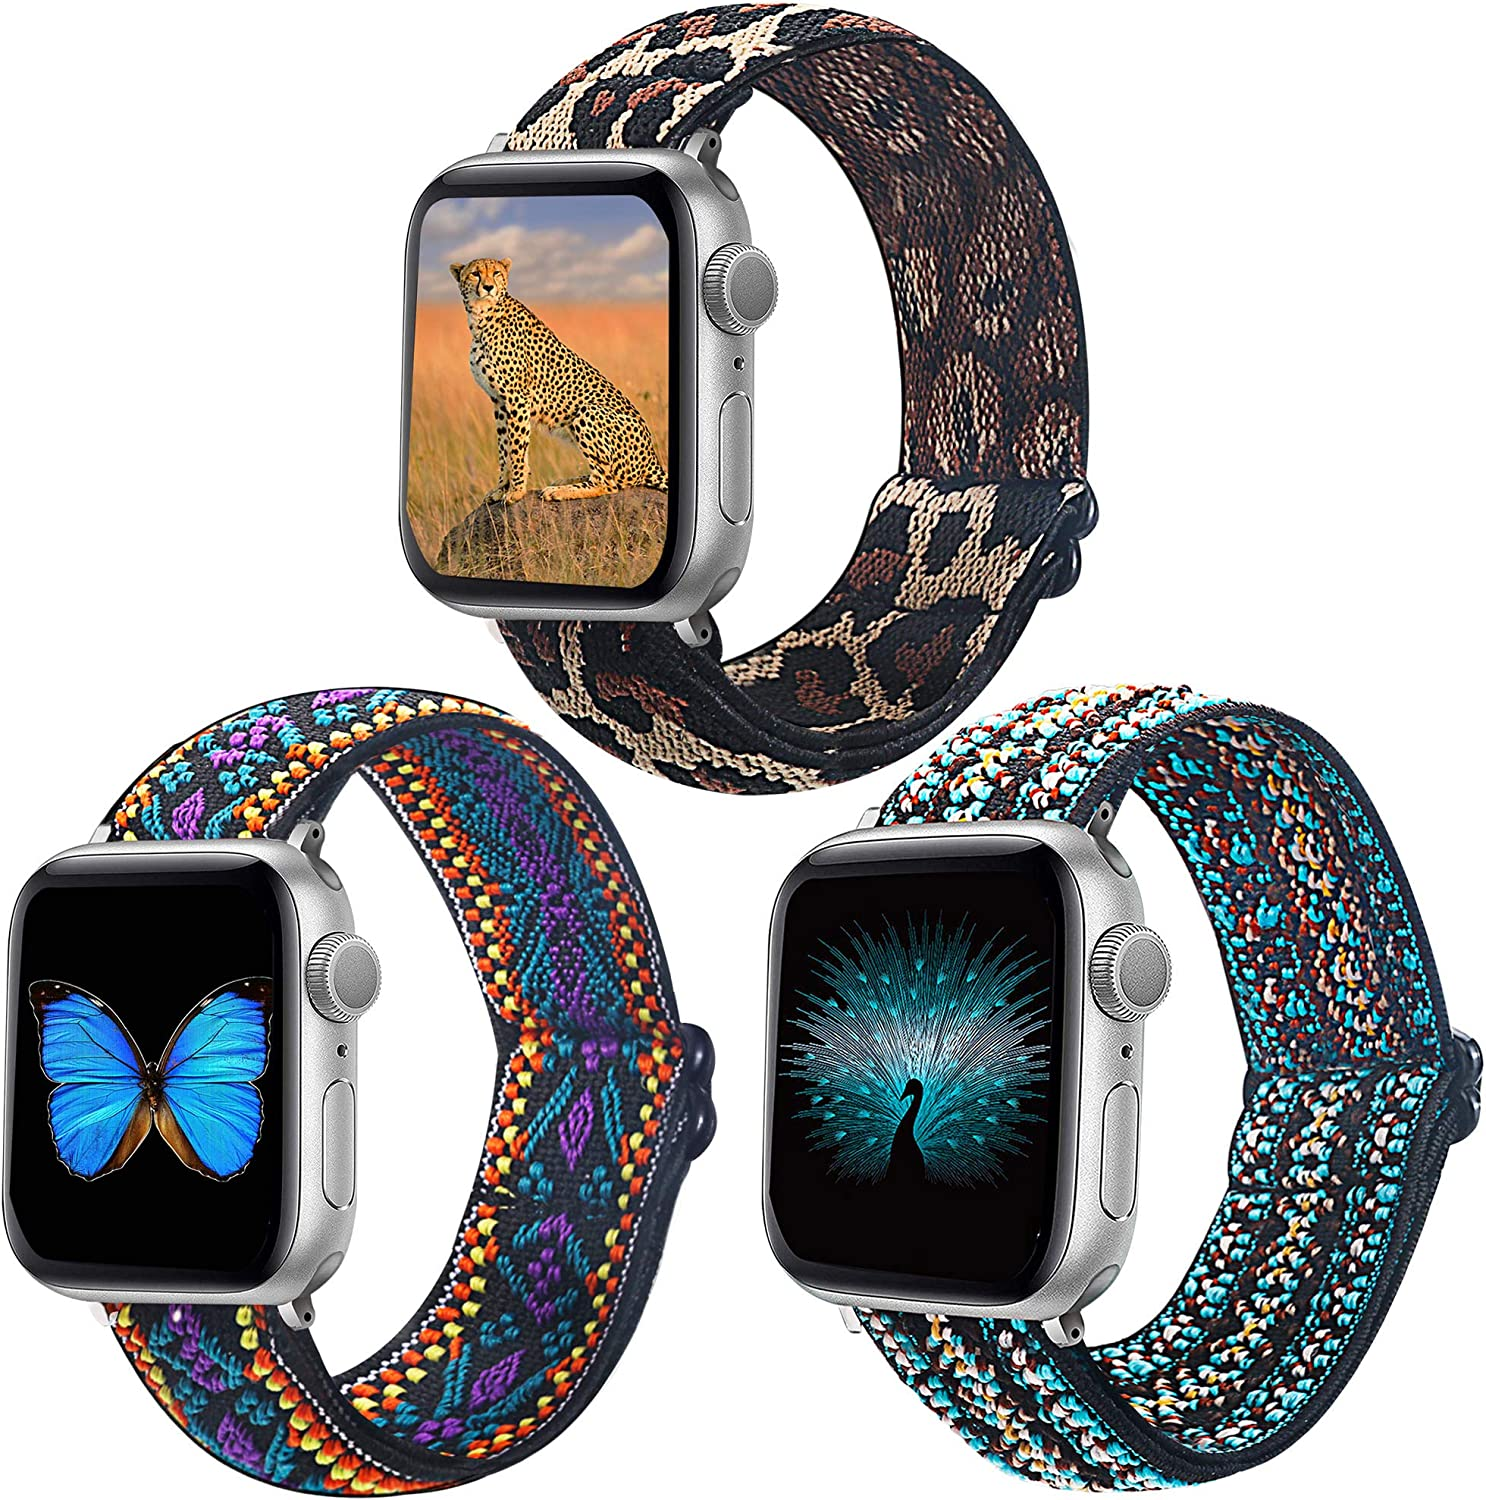 Dsytom Adjustable Elastic Band Compatible with Apple Watch Bands 38mm 40mm 42mm 44mm Stretchy Soft Strap Women Replacement Wristband for iWatch Series SE/6/5/4/3/2/1 bands